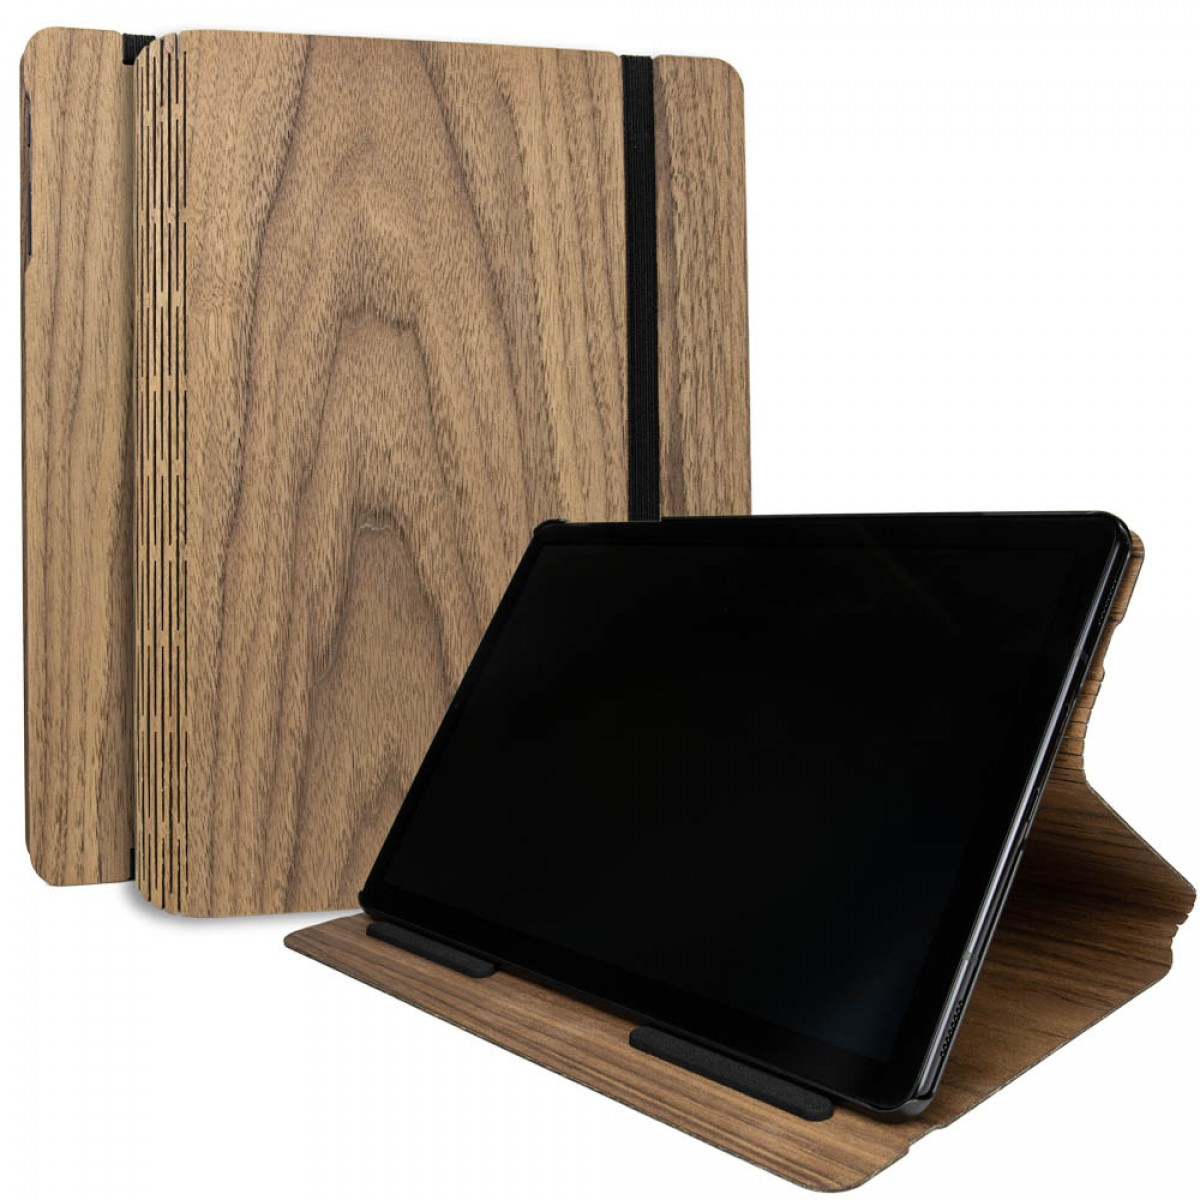 JUNGHOLZ Design WoodCase, Tabletcase, Walnuss, Samsung Galaxy Tab S4